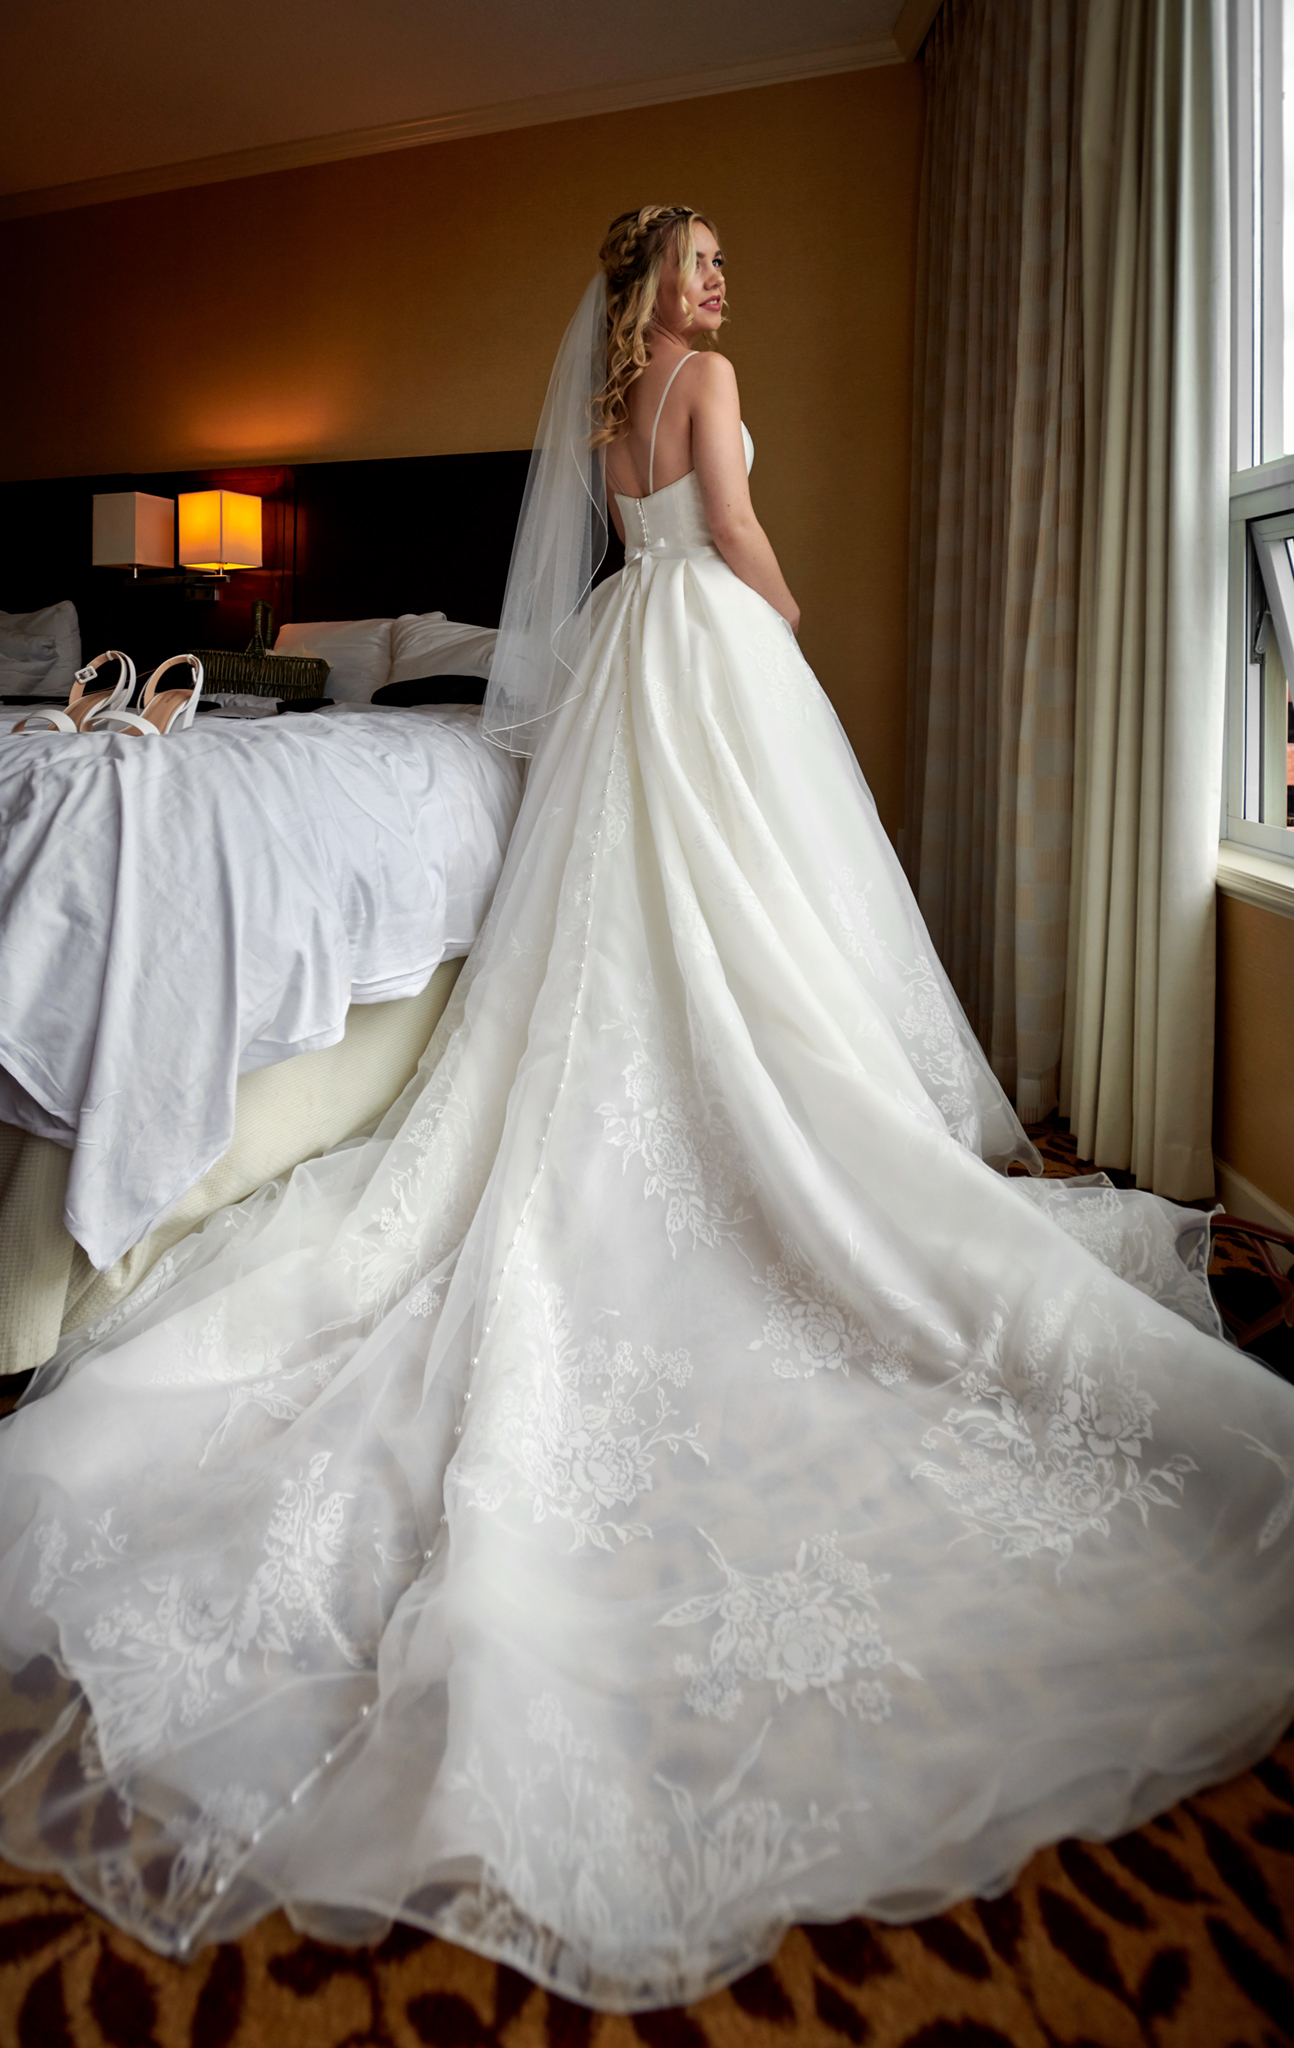 Bride portrait at Pinnacle Hotel Vancouver wedding